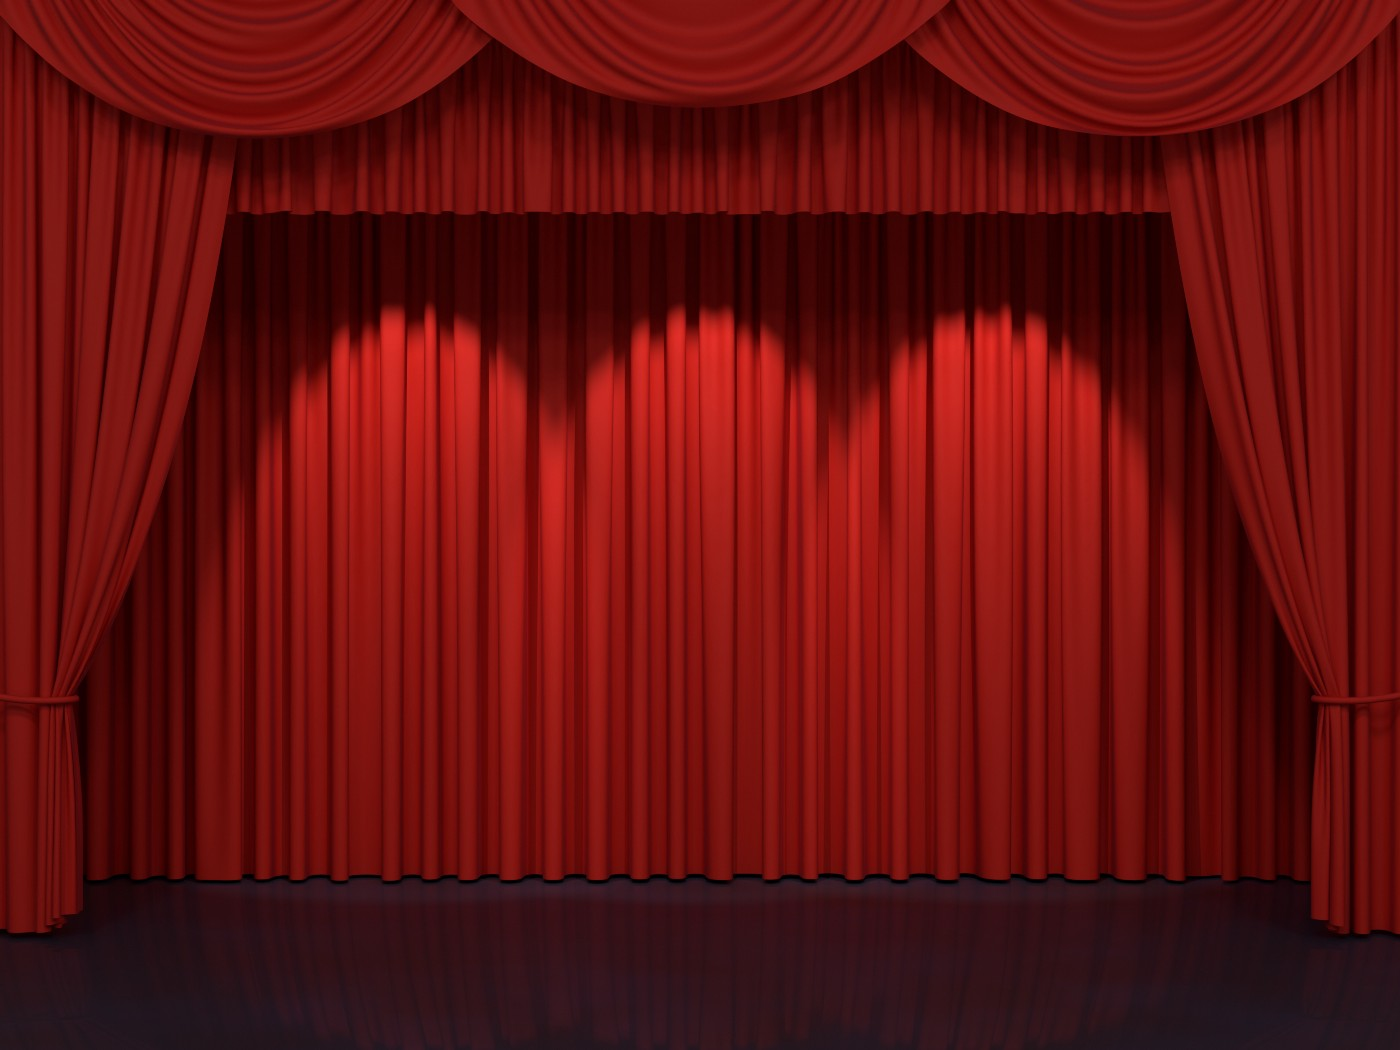 Red curtains framing an empty stage